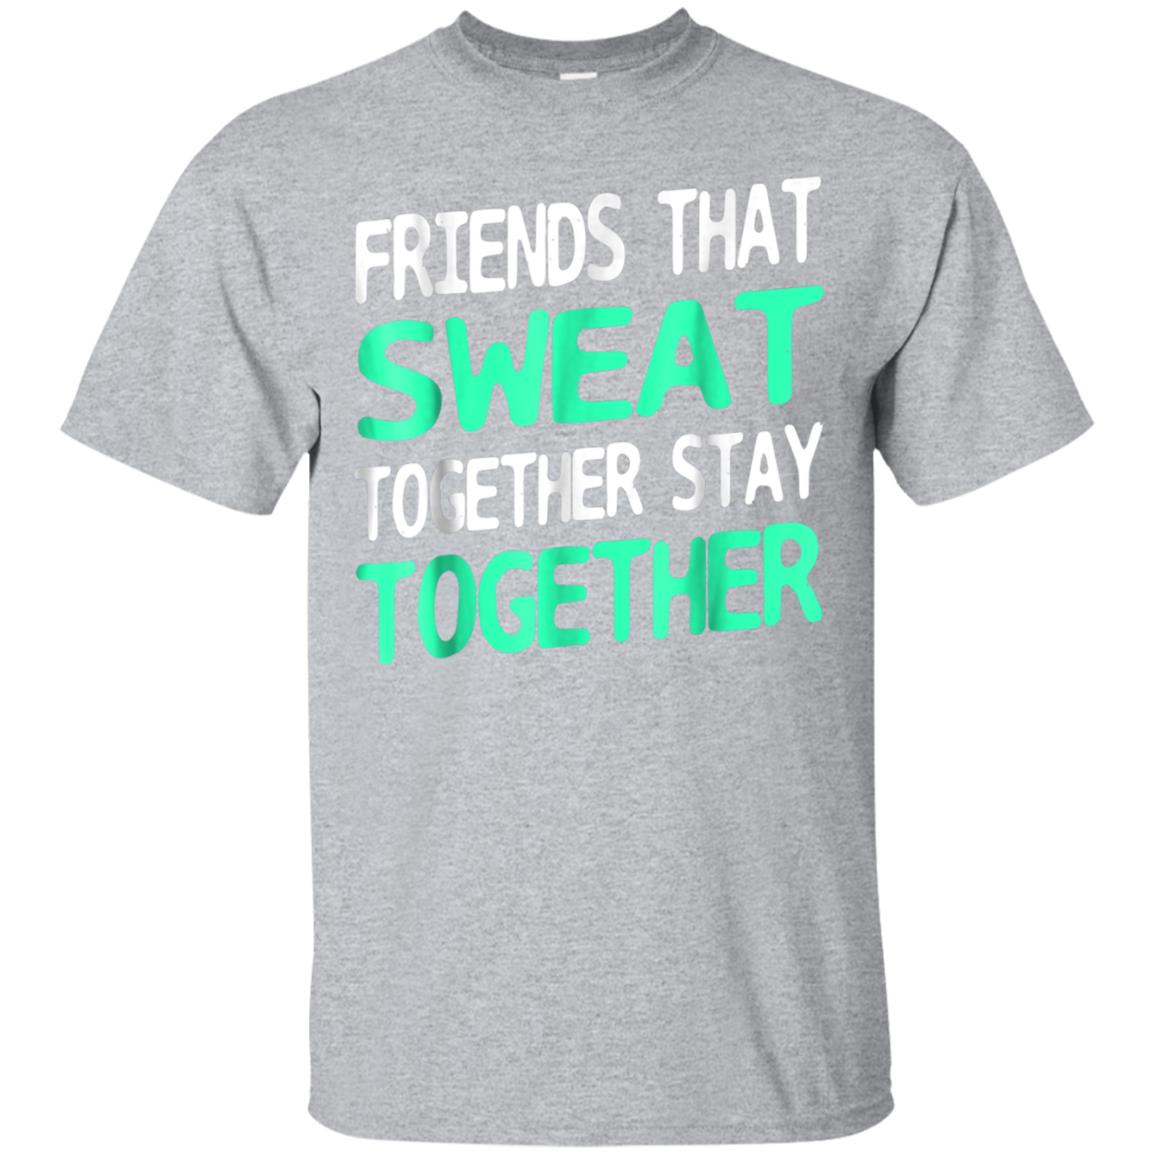 Friends That Sweat Together Stay Together TShirt Sport Worko 99promocode